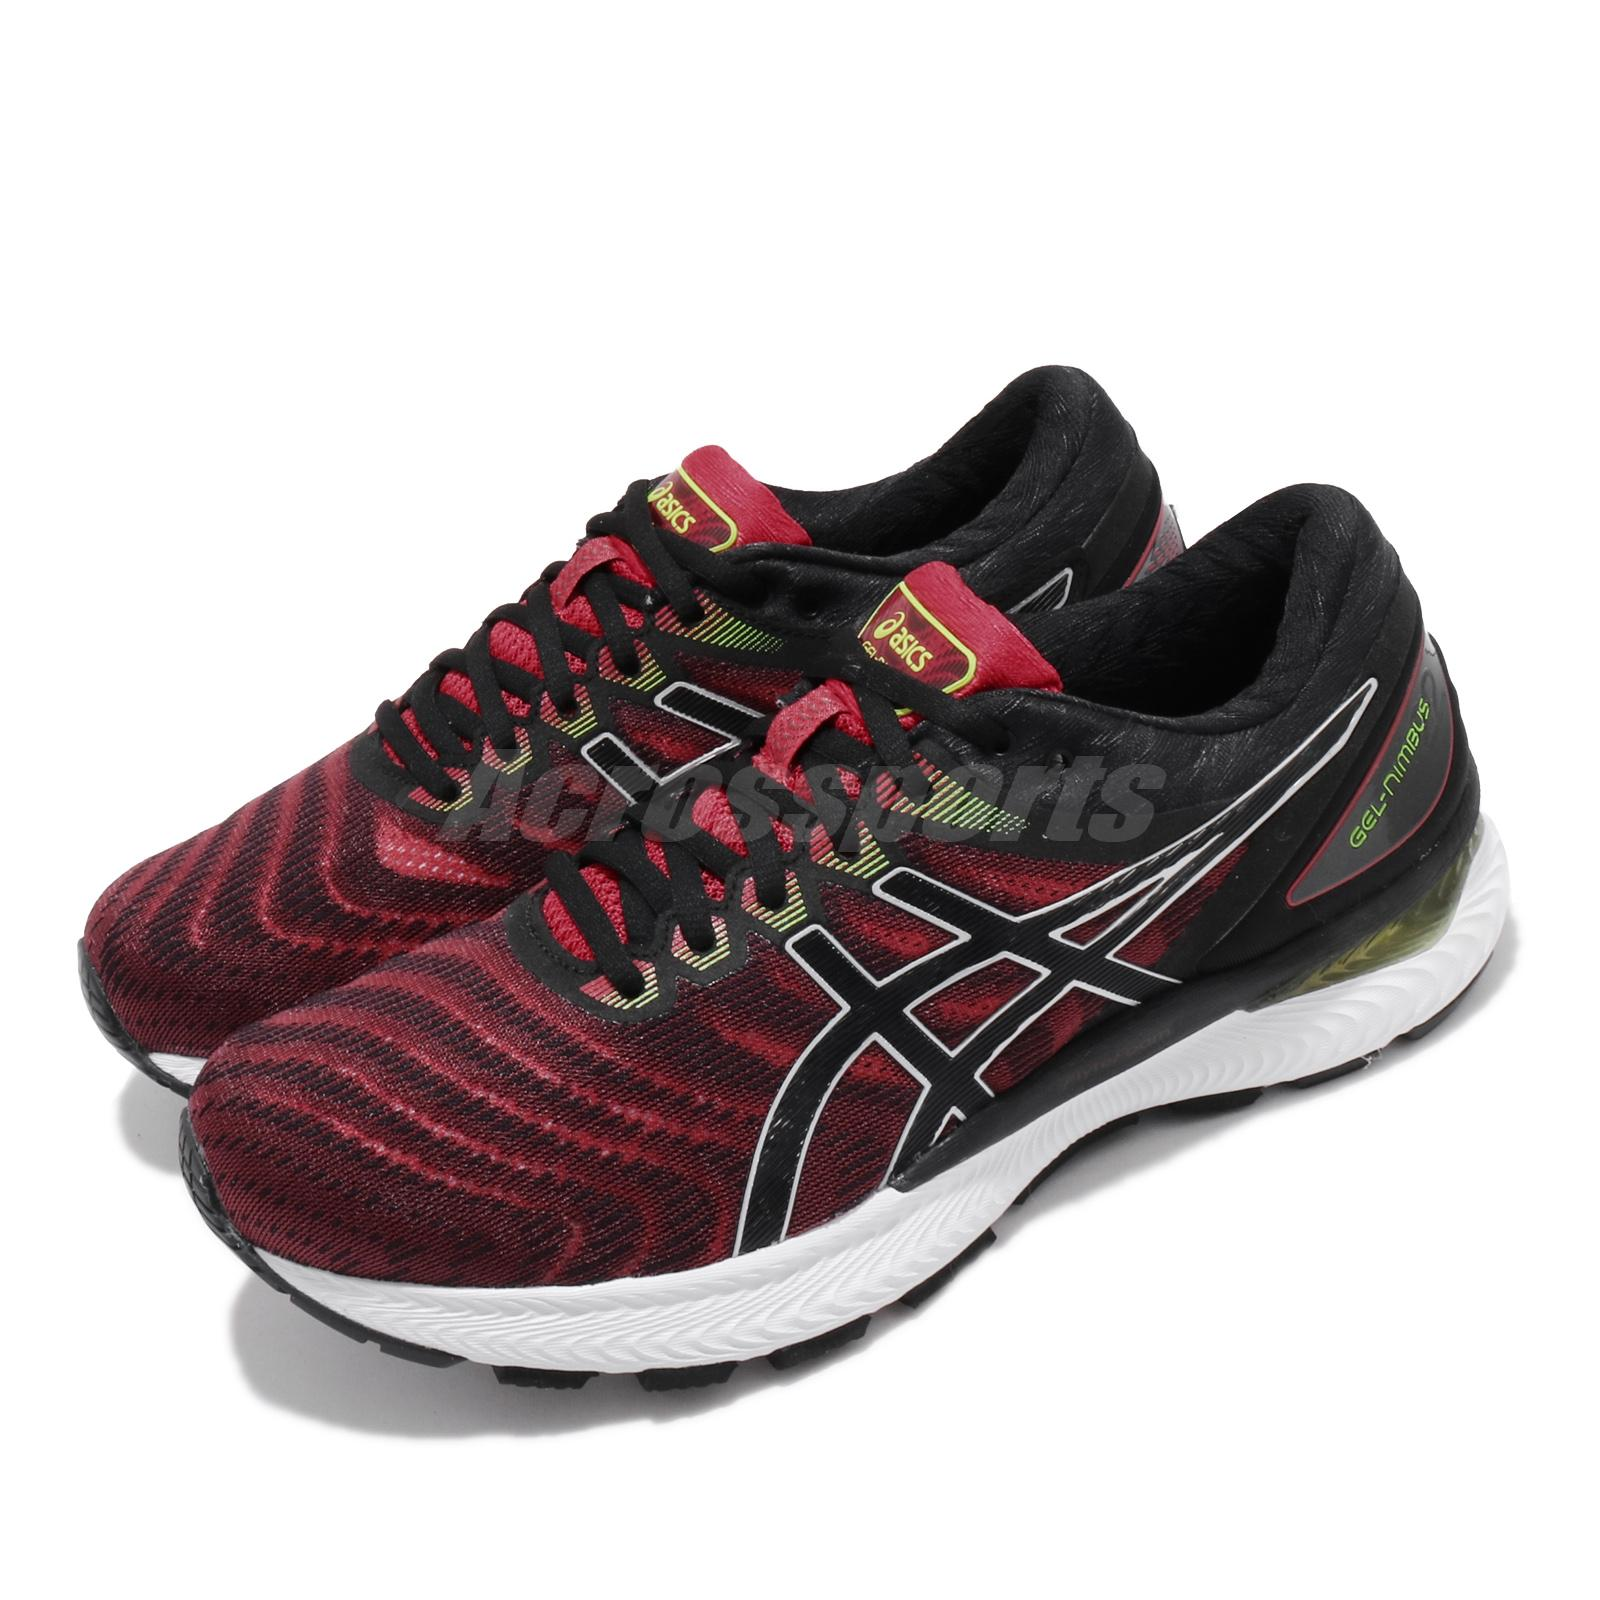 Black Red Sports Asics Mens Gel-Nimbus 22 Running Shoes Trainers Sneakers